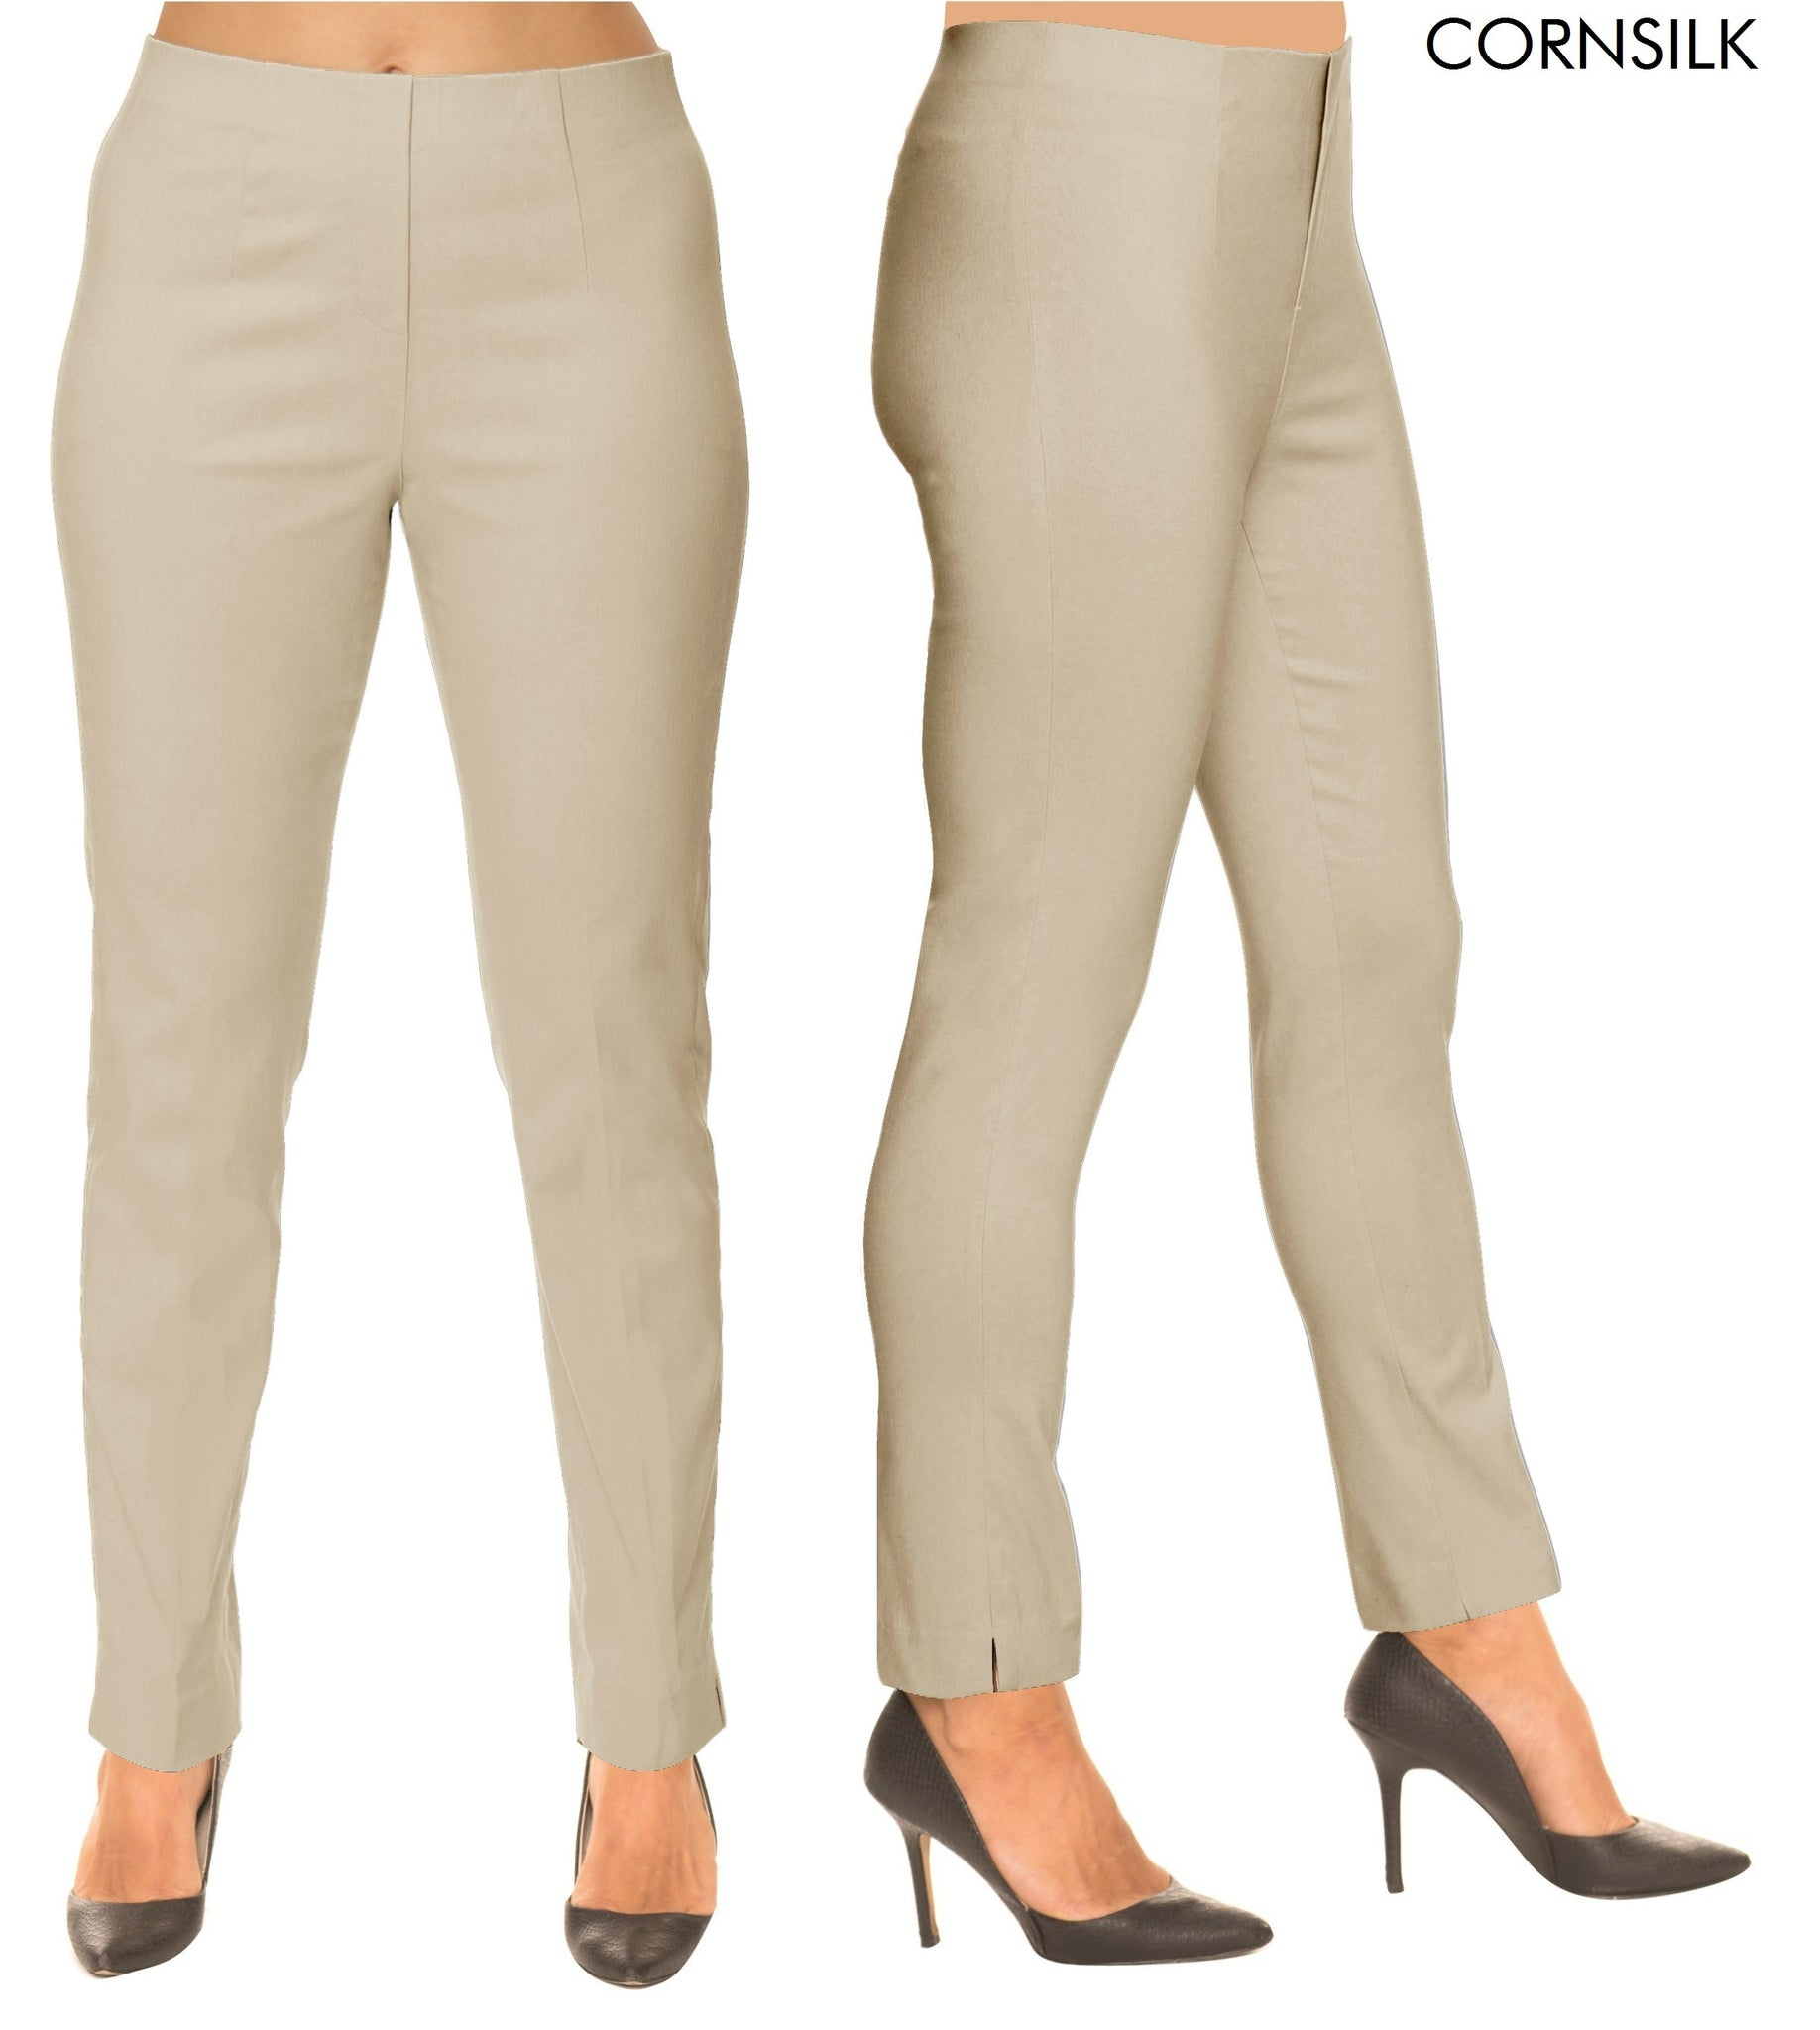 Lior Sasha Cornsilk Pull Up Stretch Pant